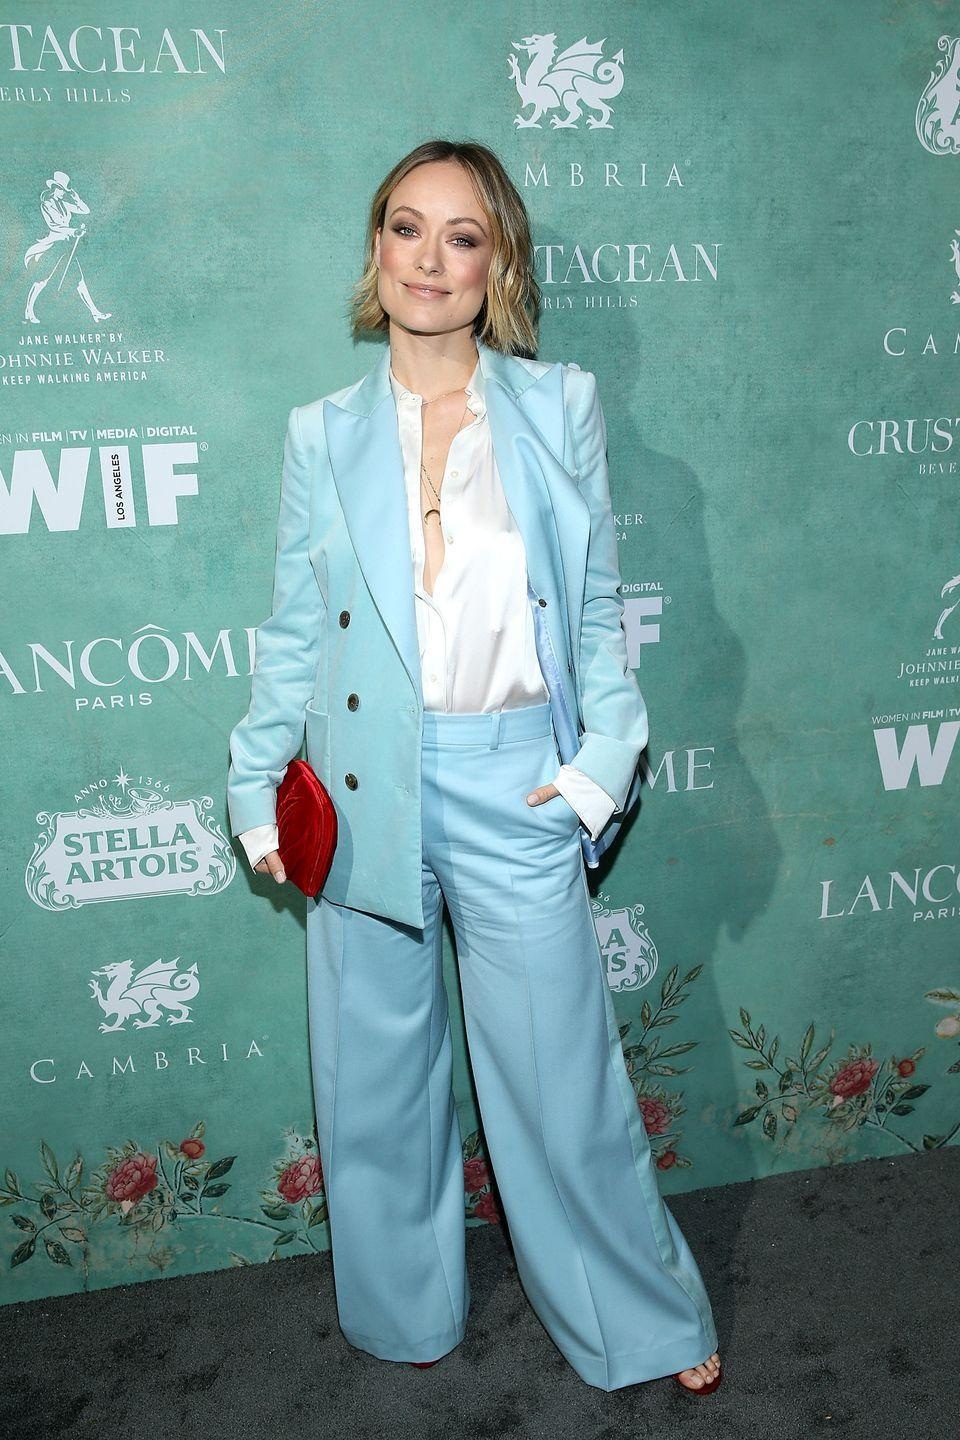 <p>Wilde rocked a stunning powder blue trousers suit by Bella Freud for the annual event, hosted in California.</p><p>She teamed the look with a white silky shirt, open-toe sandals and a red clutch bag. </p>